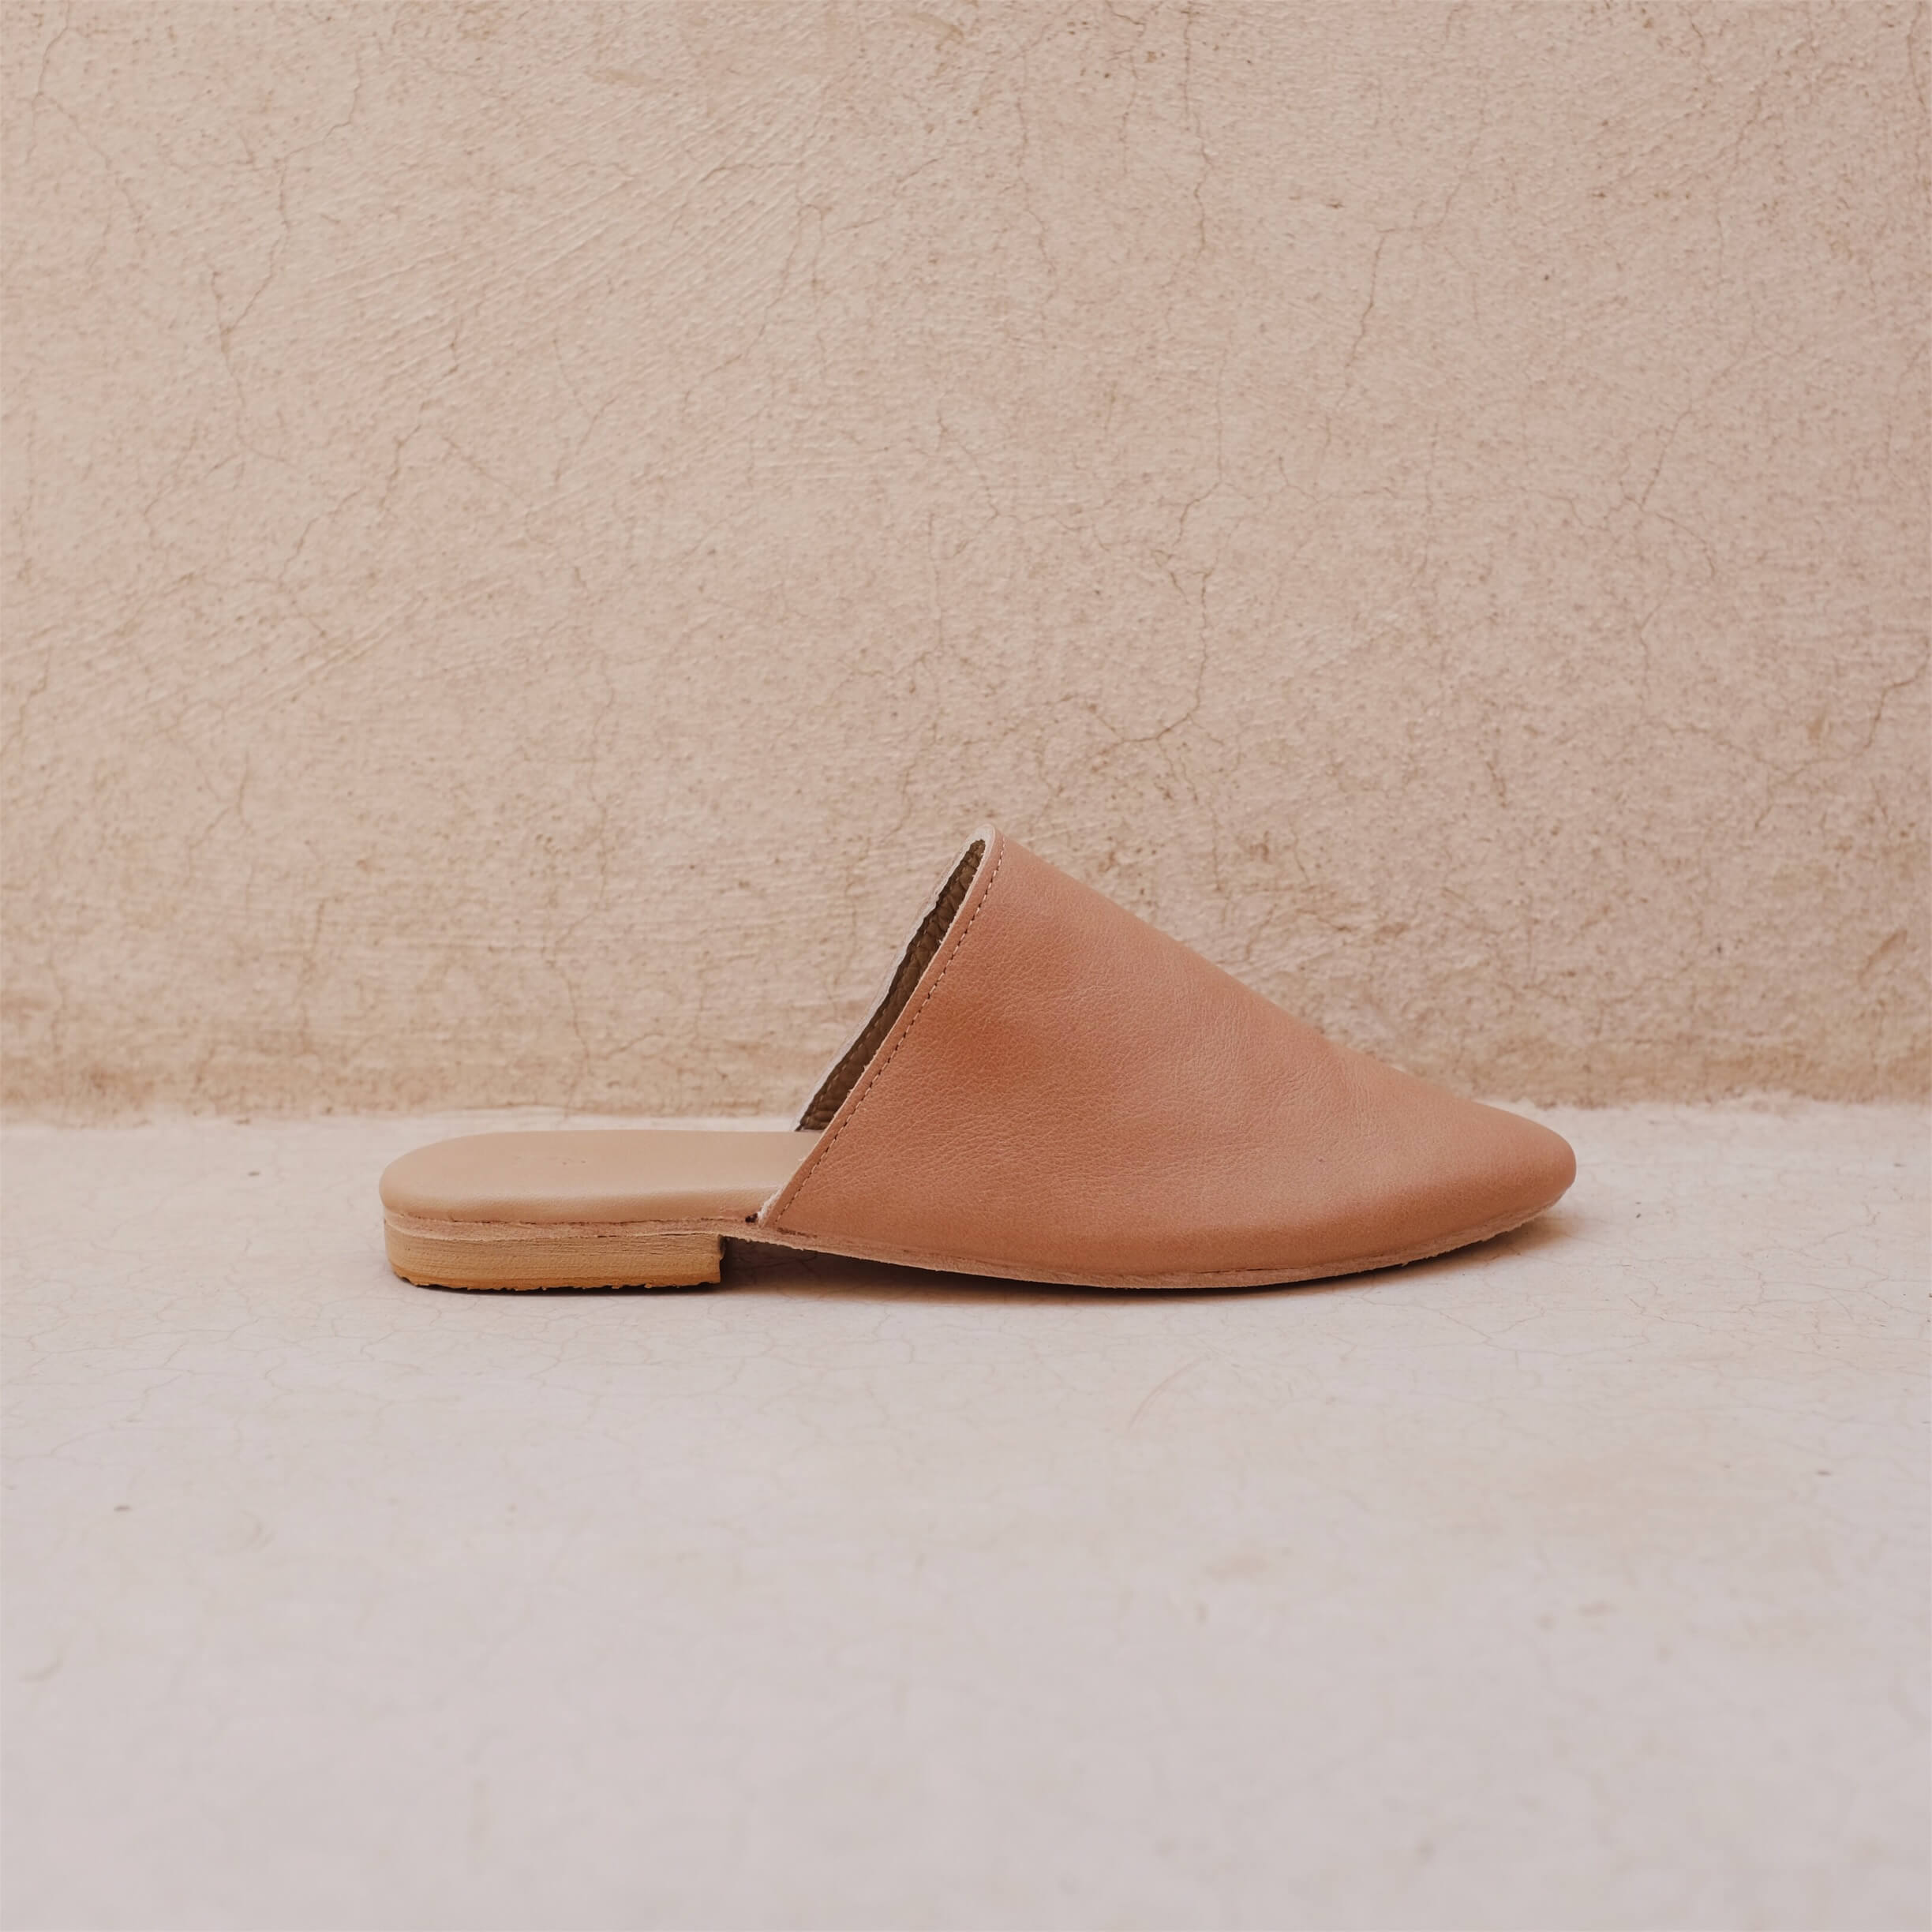 The Lei Studio Slide Almond Leather